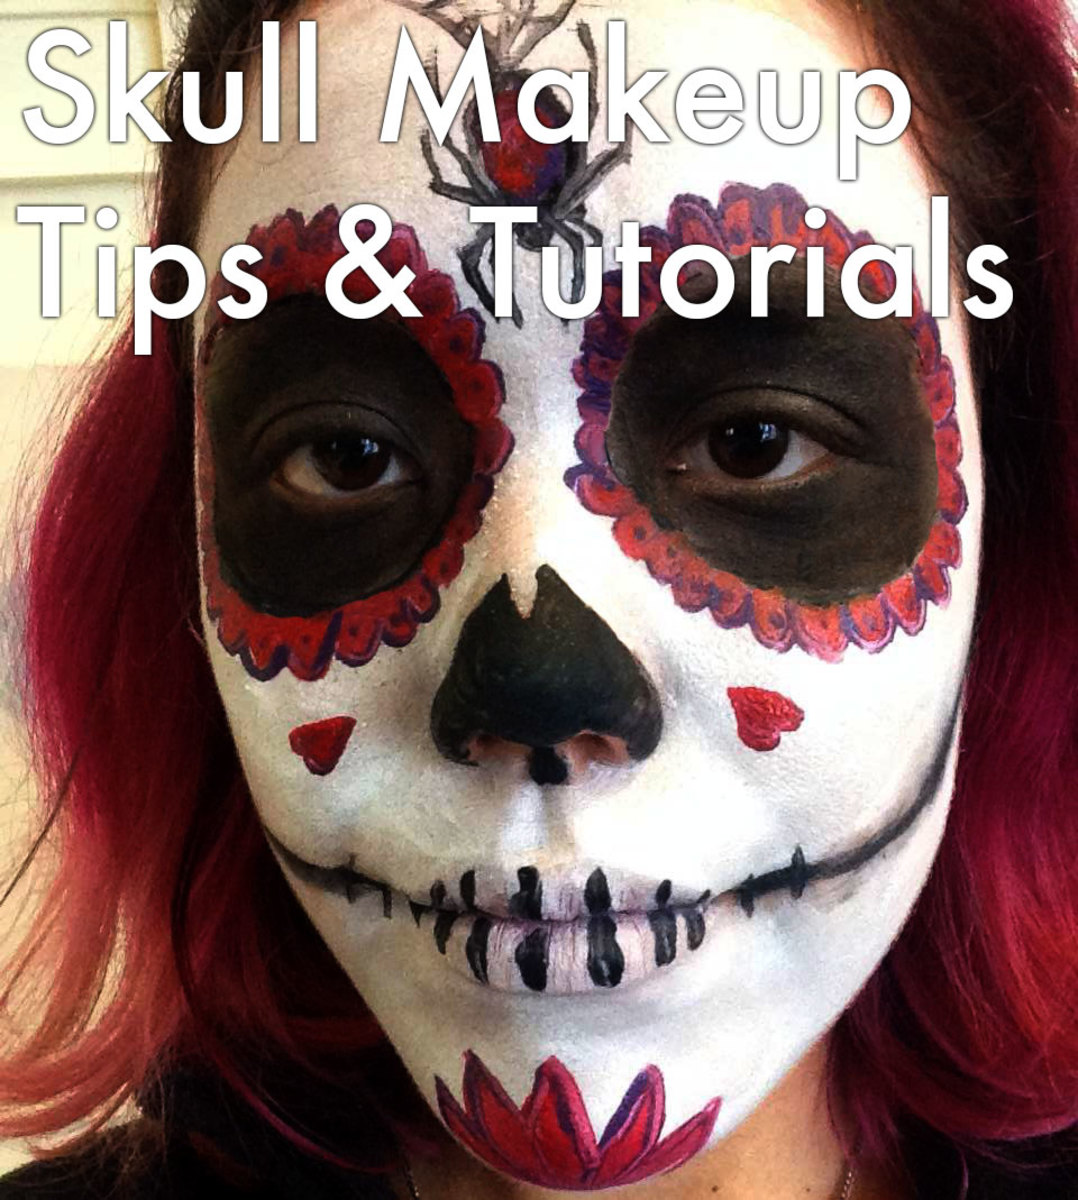 Skull Makeup Tips and Tutorials